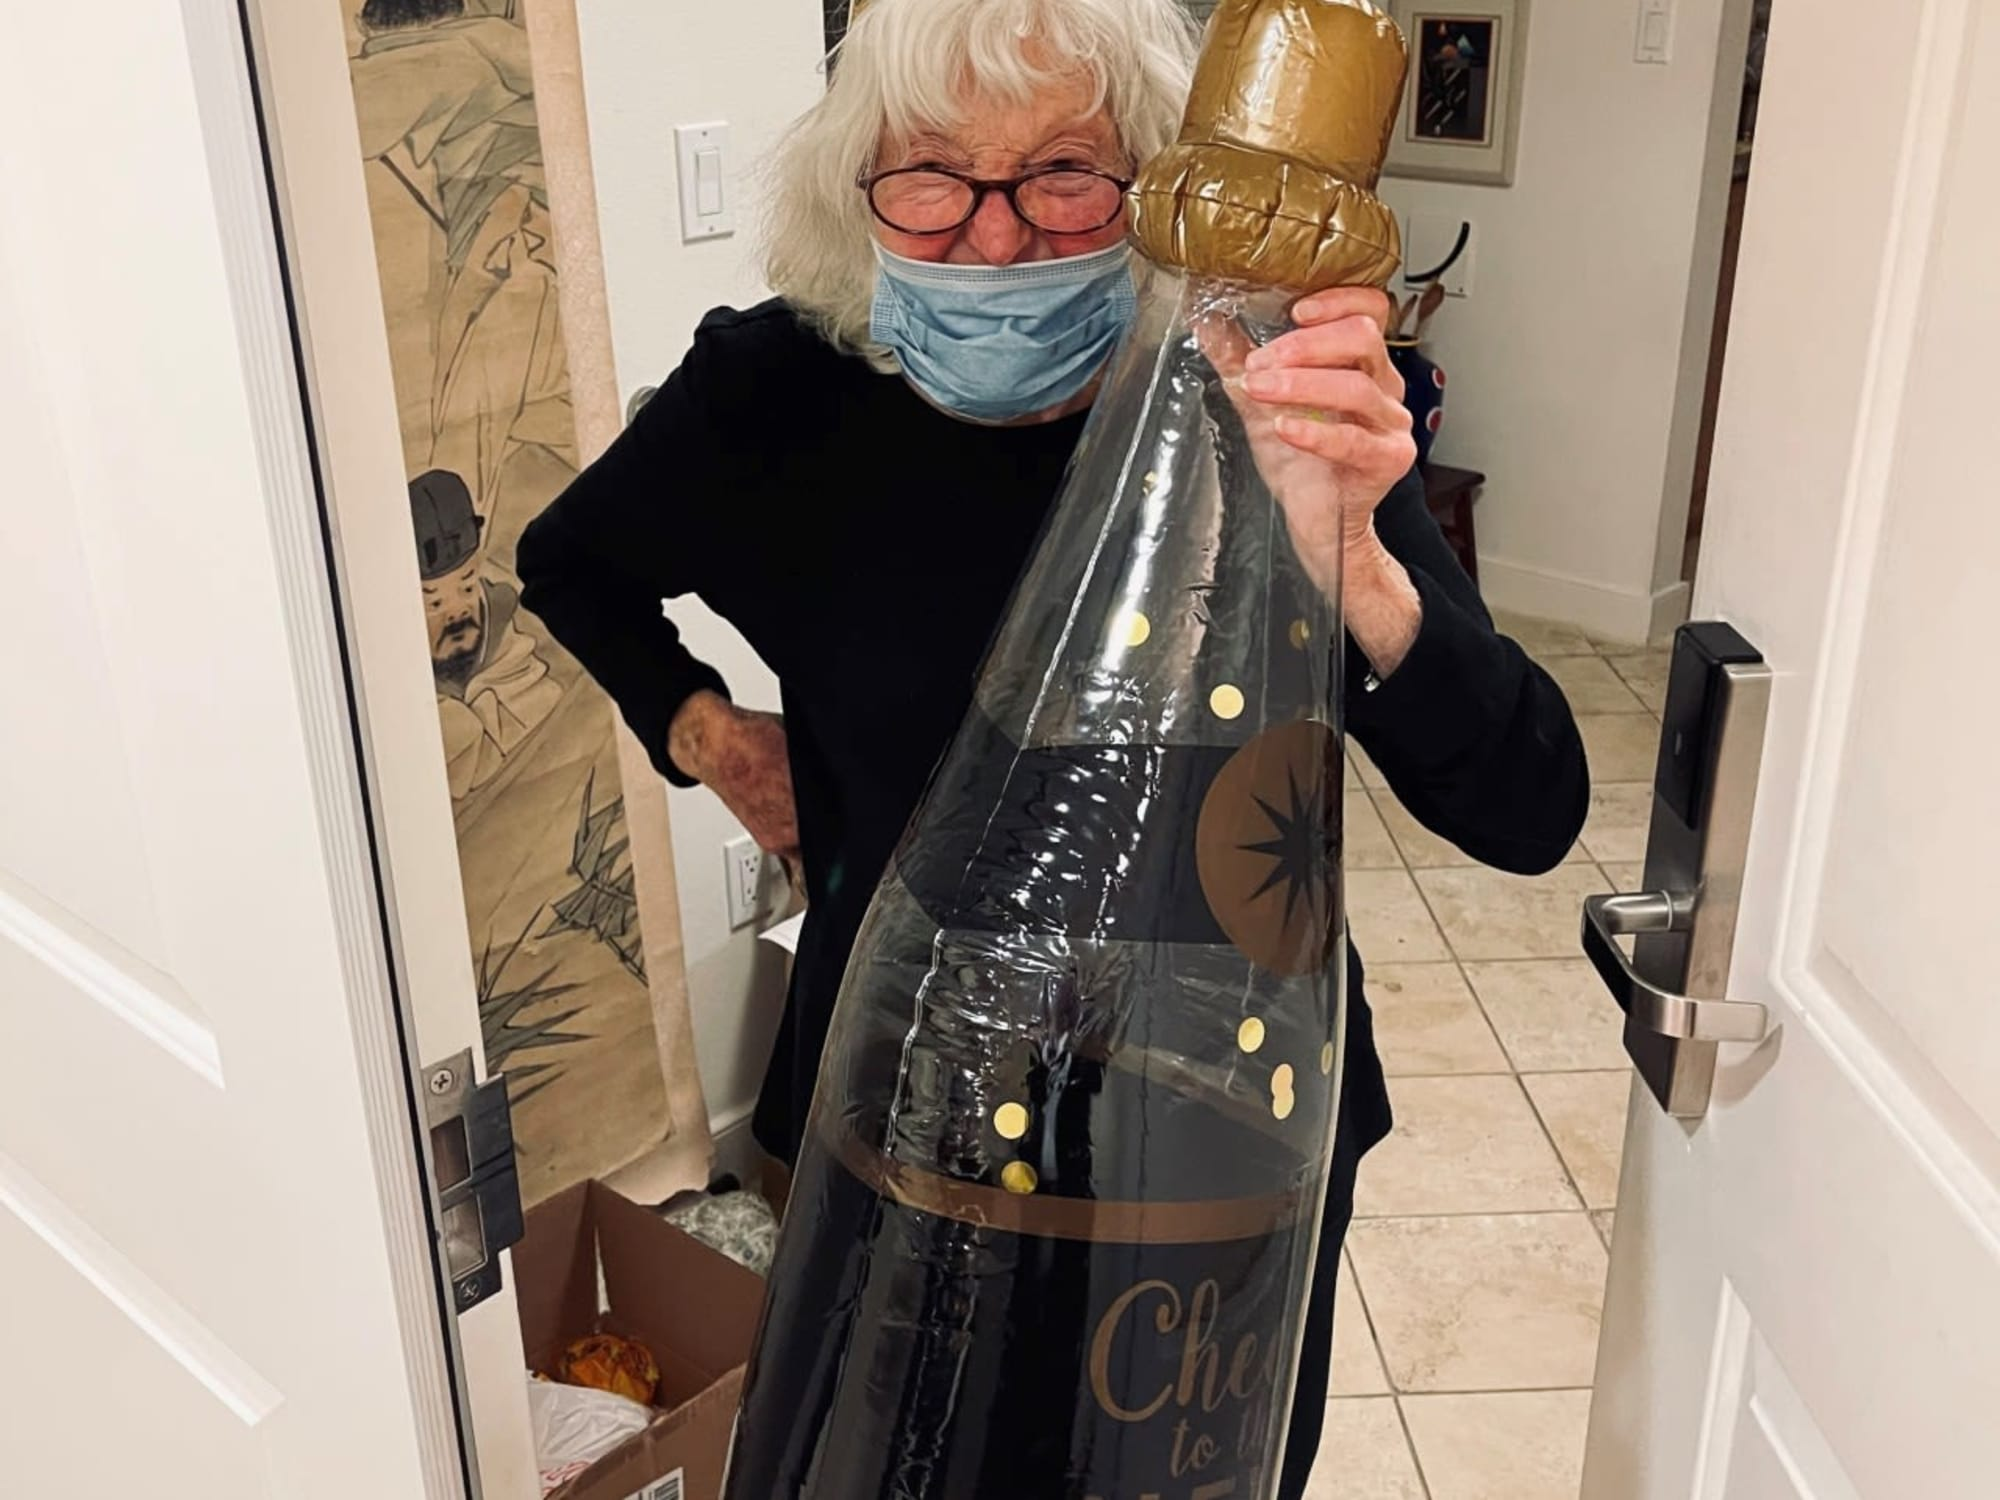 Giant blow up champagne bottle at The Bellettini in Bellevue, Washington